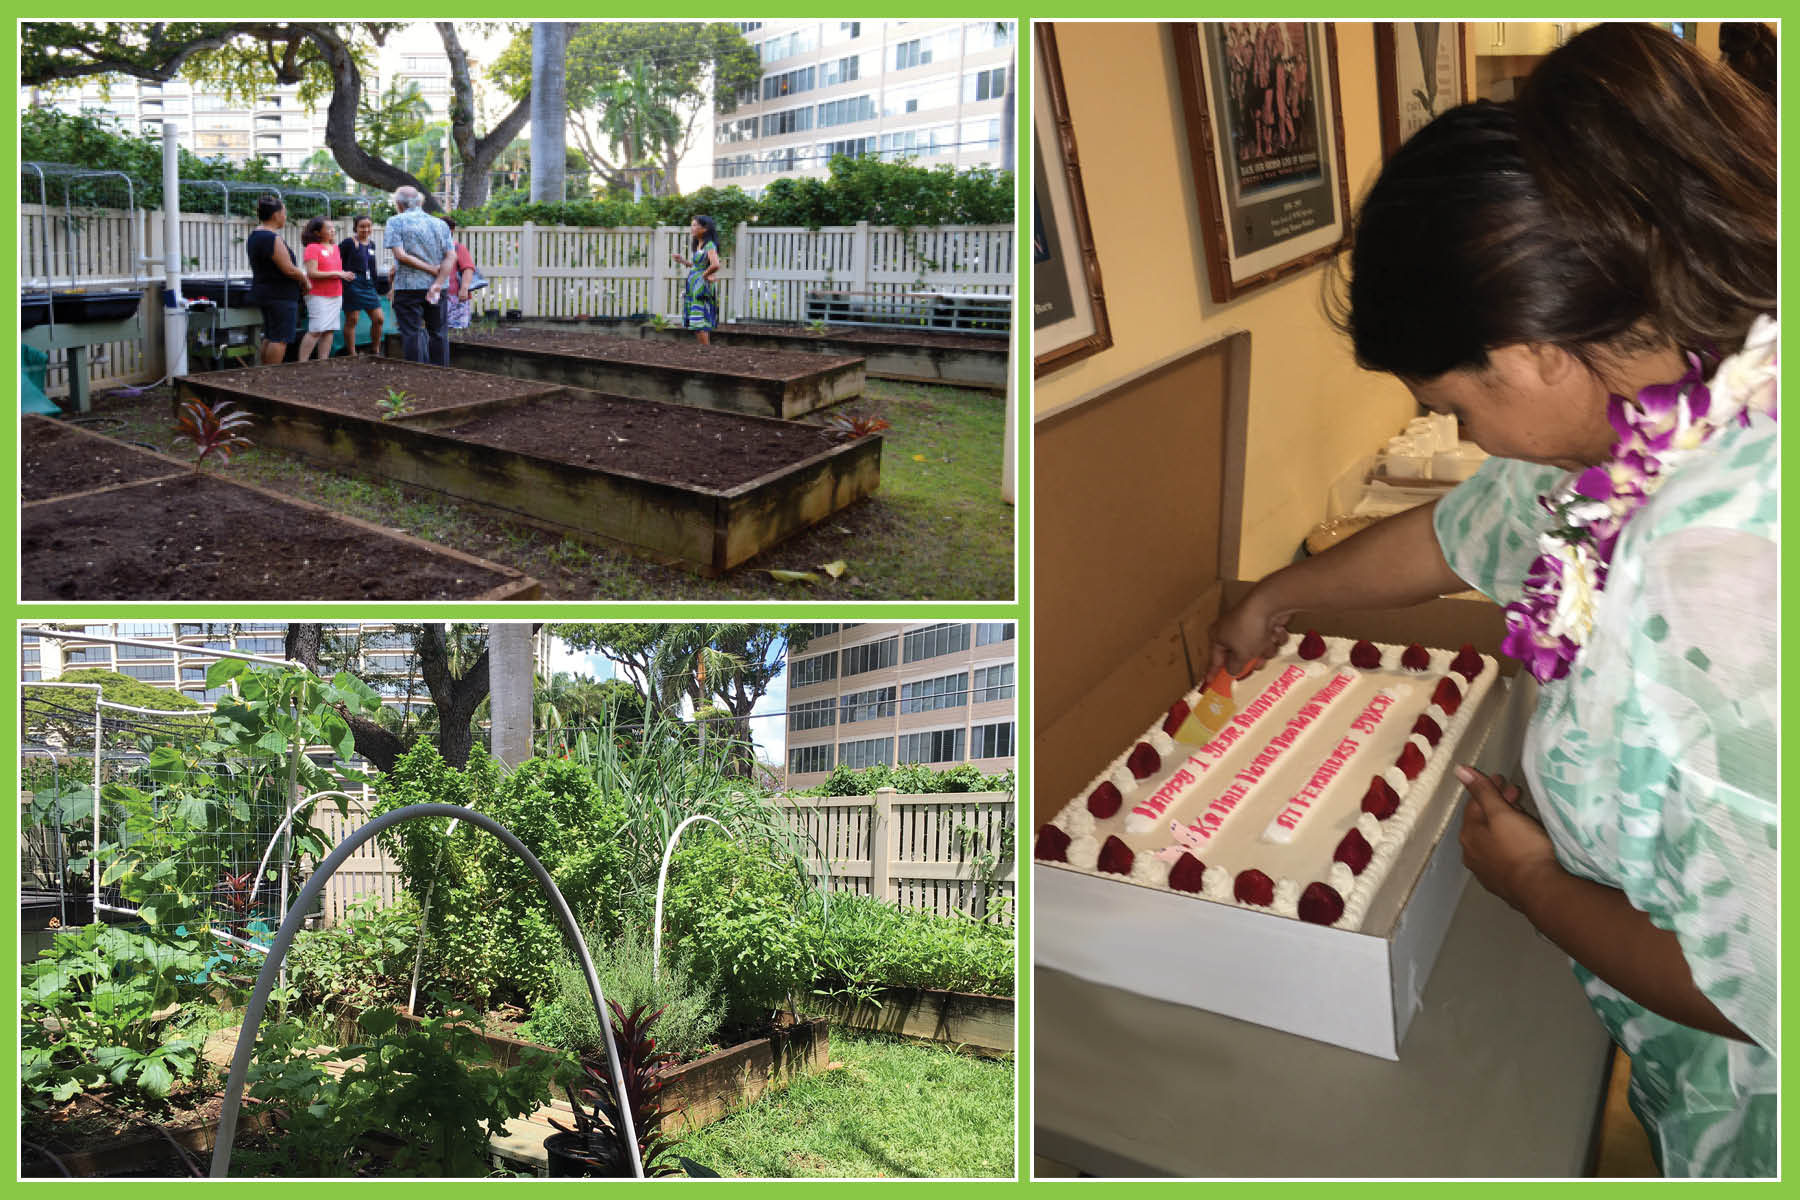 (Top left) YWCA O'ahu invited supporters to an Open House at Fernhurst YWCA last October and the photo below shows the growth of the Fernhurst community garden, overflowing with sweet potato and lemongrass. (Right) Fernhurst YWCA Program Manager Talia Cardines cut the cake at the one-year anniversary celebration of Ka Hale Ho'āla Hou No Nā Wāhine at YWCA O'ahu.